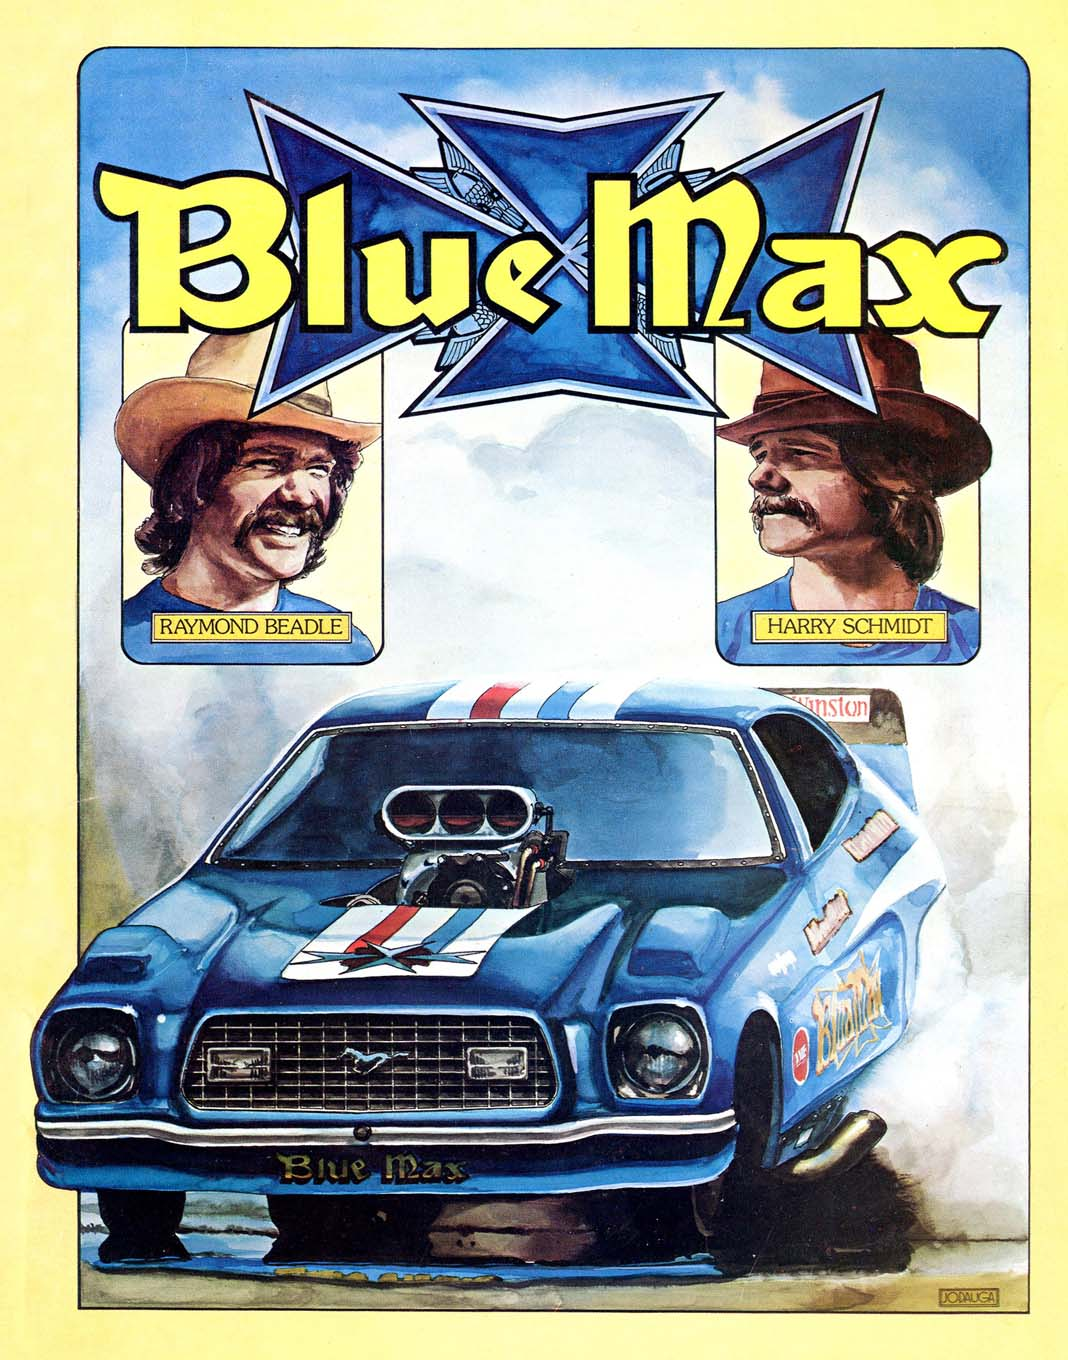 By the mid-1970s, Jodauga was doing press-kit covers for a number of the sport's major stars, including Raymond Beadle, Don Prudhomme, Gapp & Roush, Bob Glidden, Wally Booth, Maskin & Kanners, and many others.